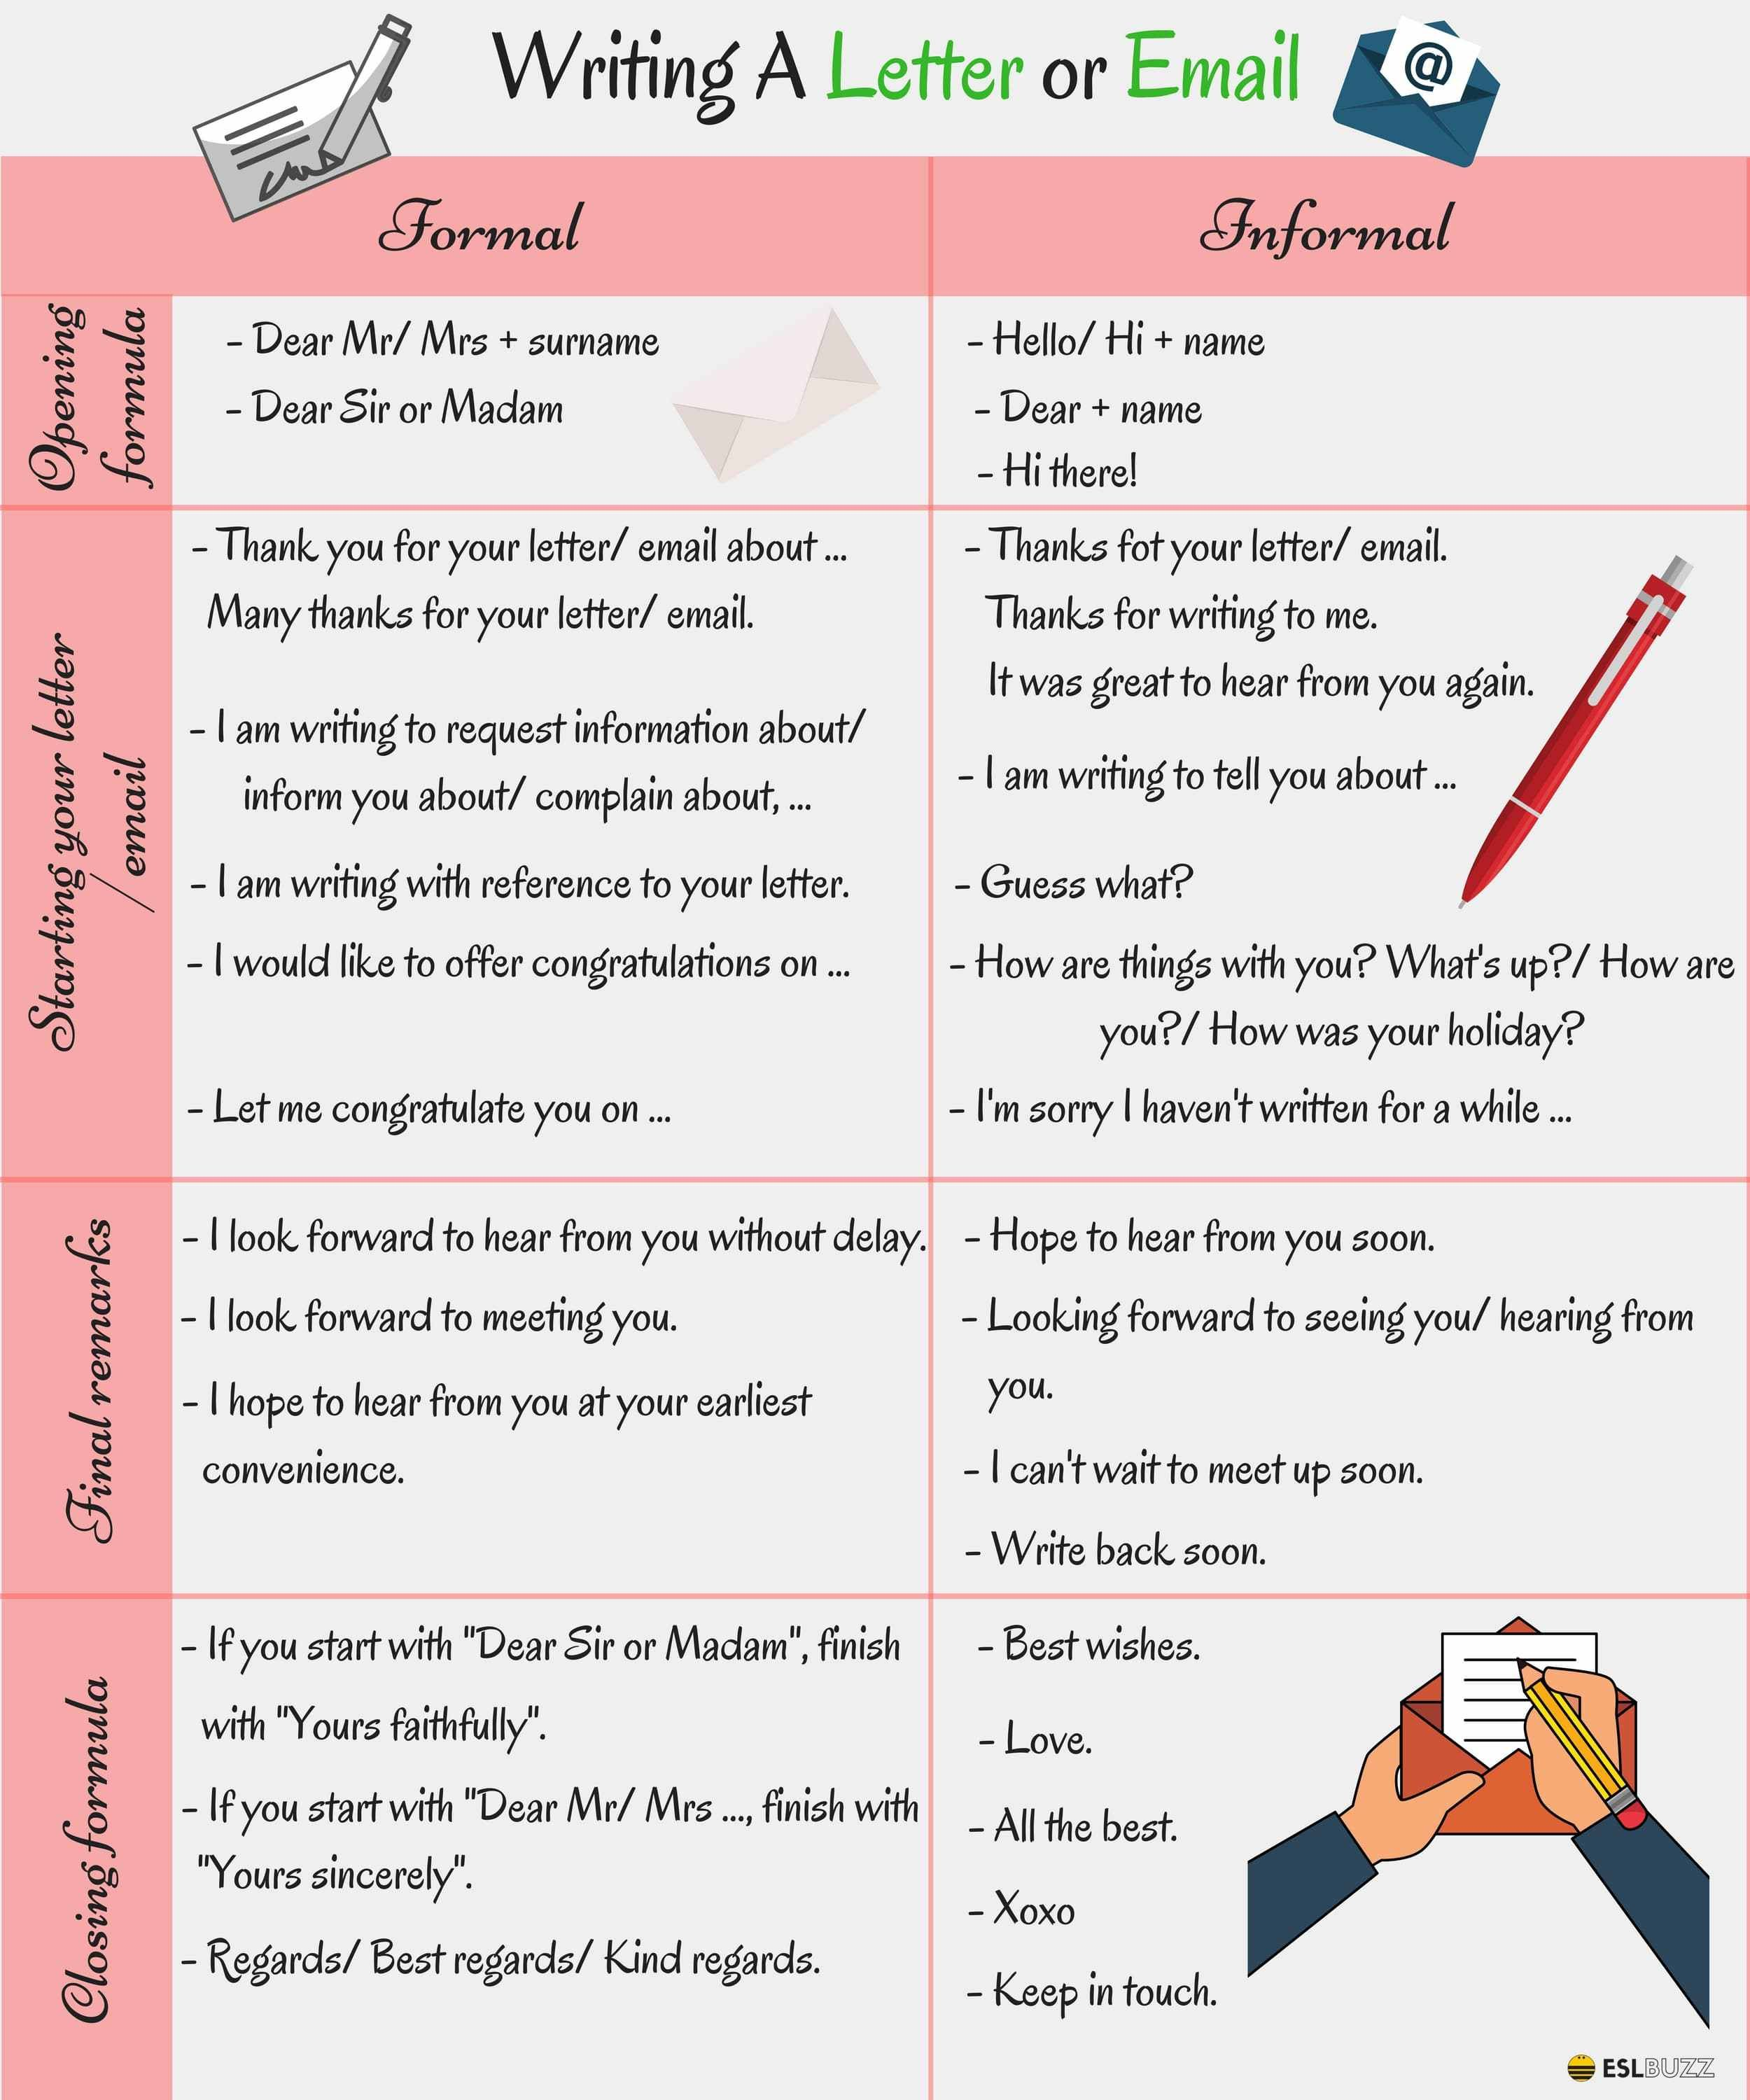 Informal vs. Formal English Writing A Letter or Email